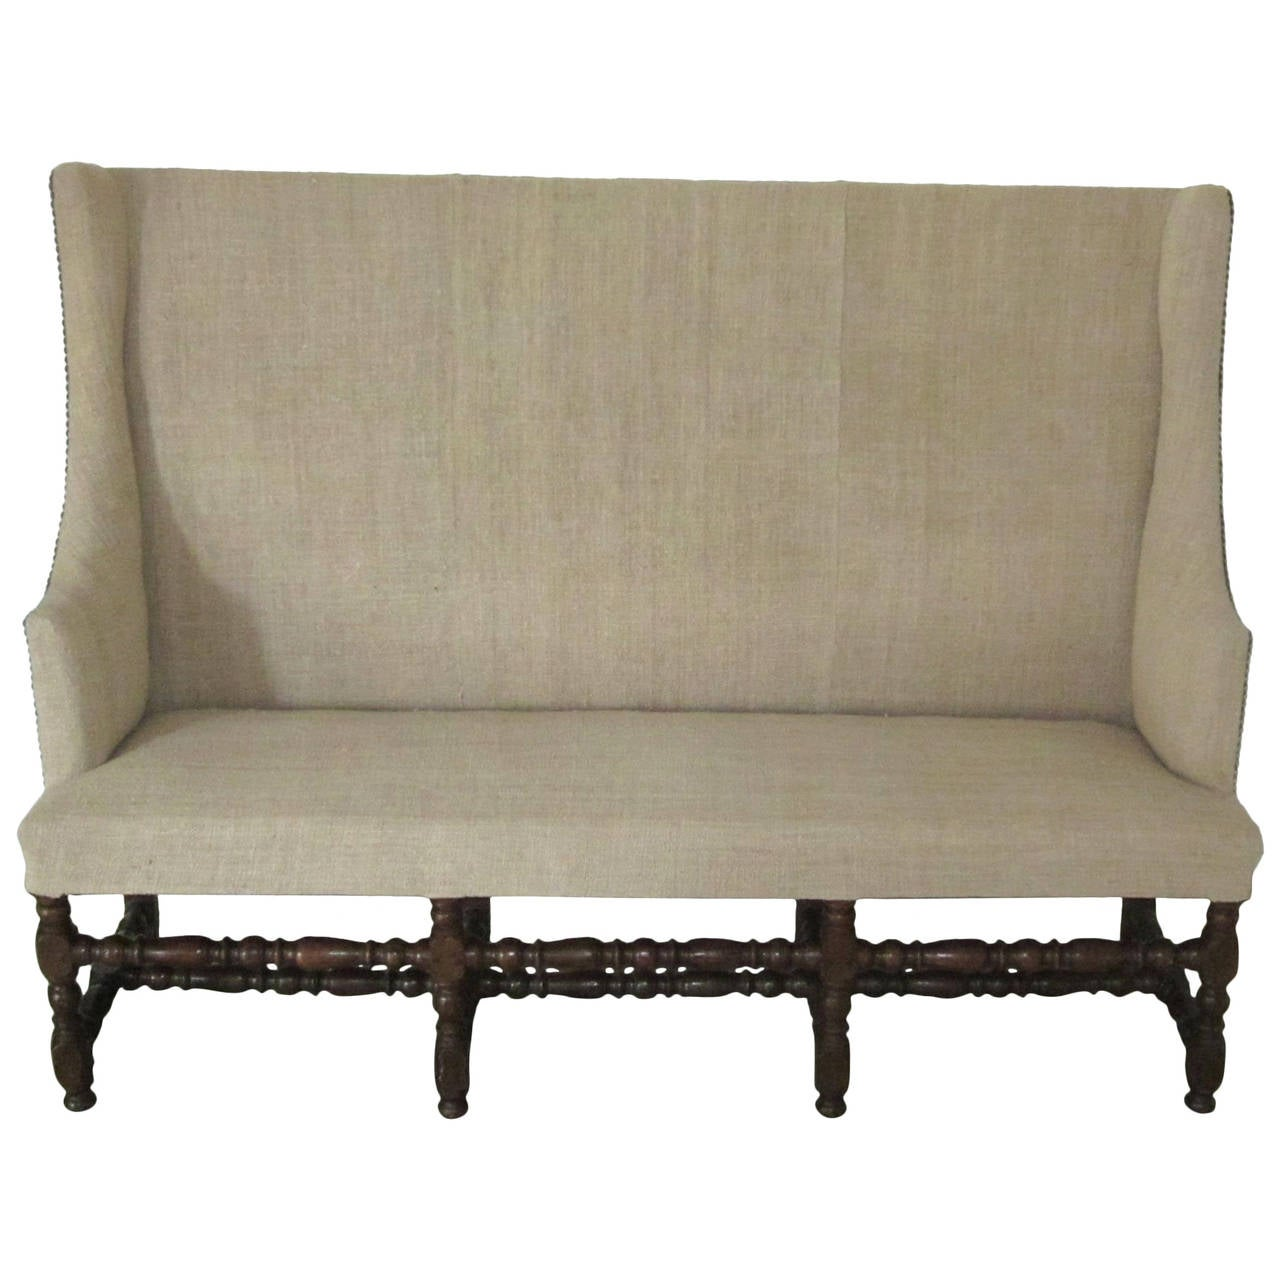 #776A54 This High Back Upholstered Settee France 18th Century Is No Longer  with 1280x1280 px of Most Effective High Back Upholstered Bench 12801280 wallpaper @ avoidforclosure.info